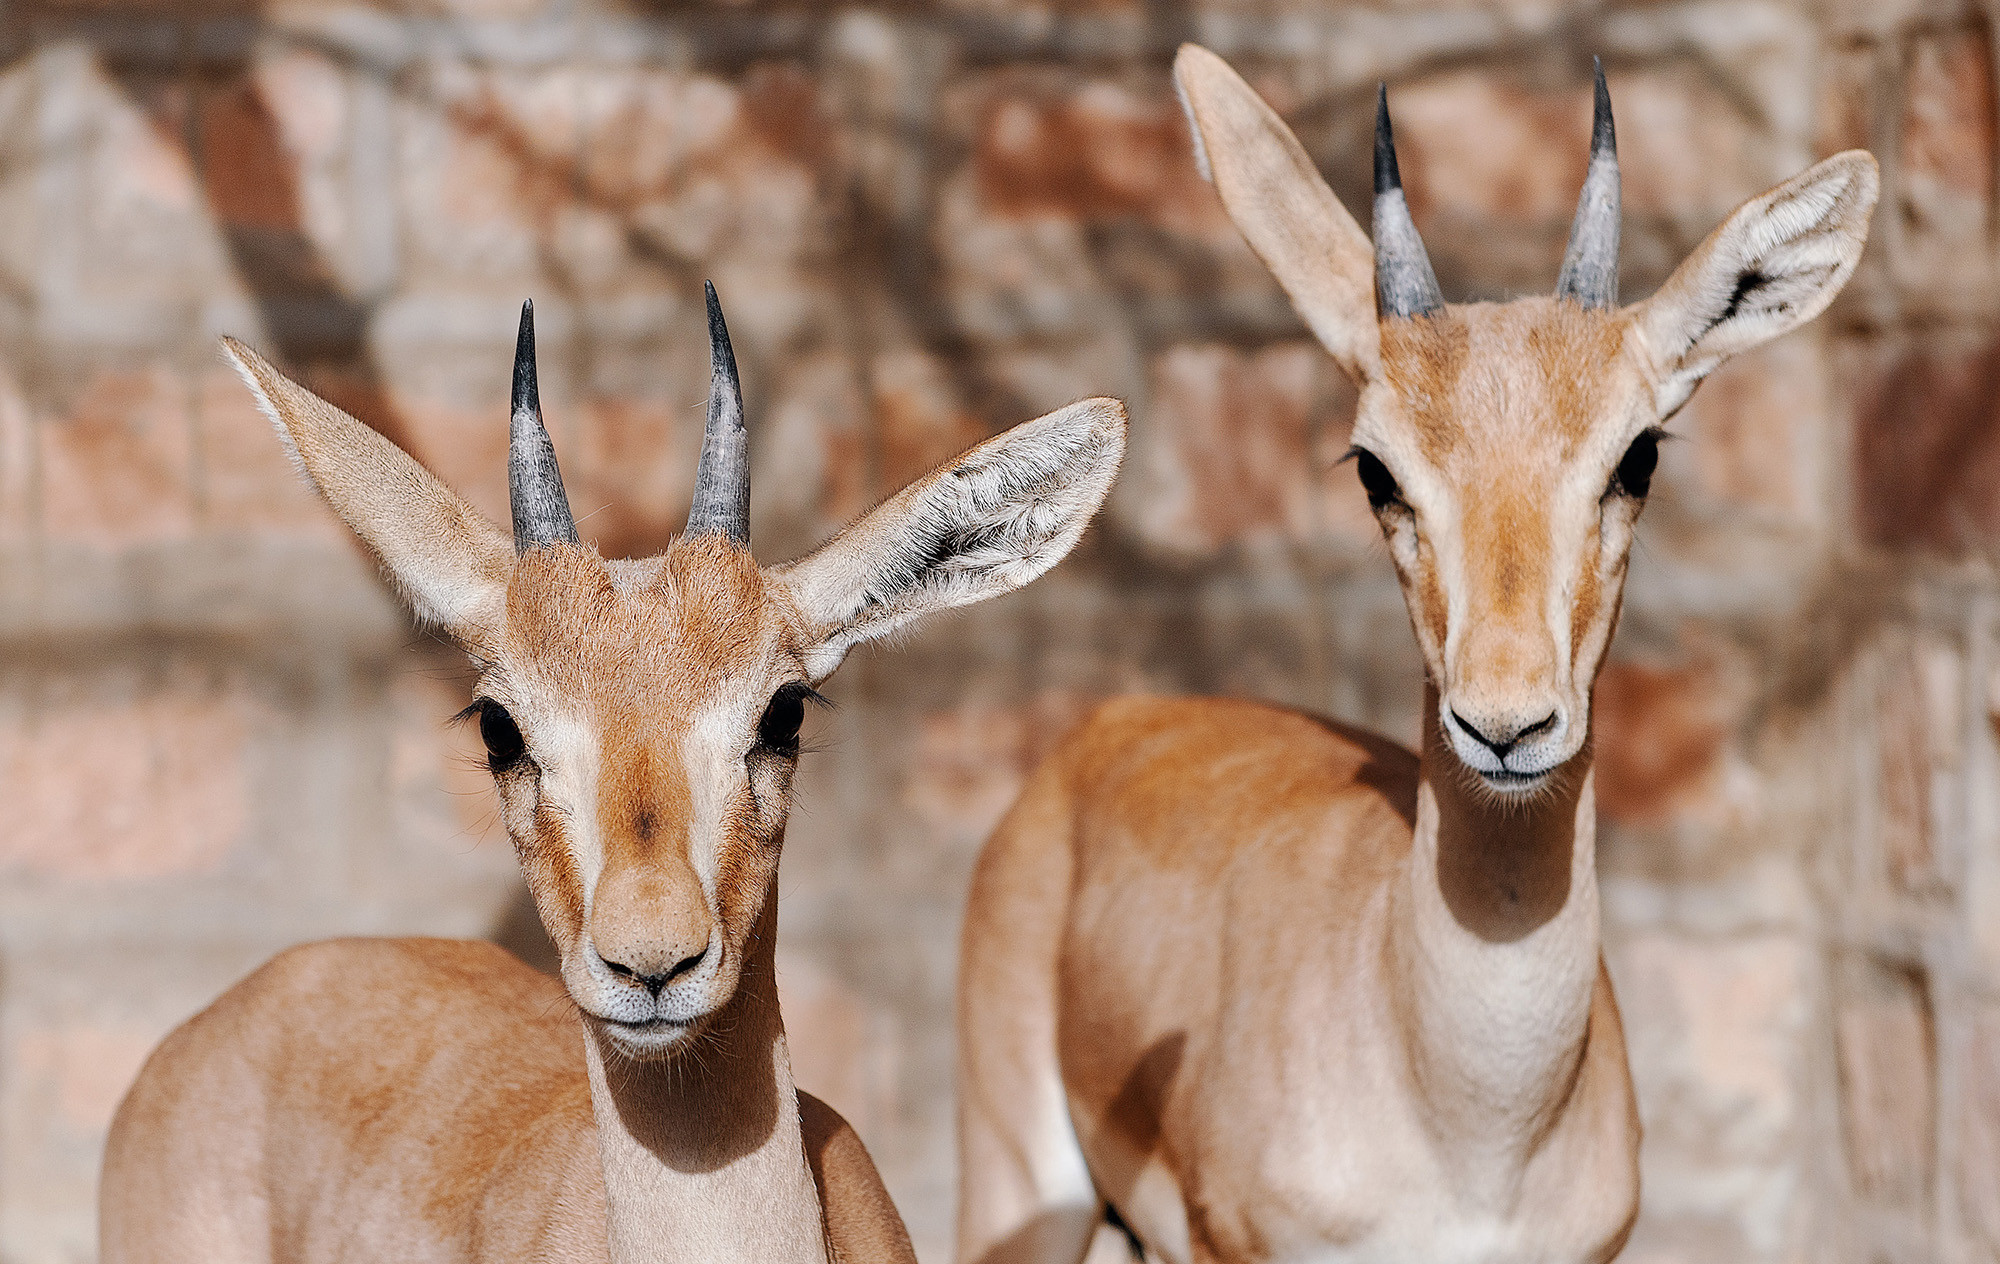 Two young deer at the rehabilitation facility for animals the temple in village Jajiwal near Jodhpur